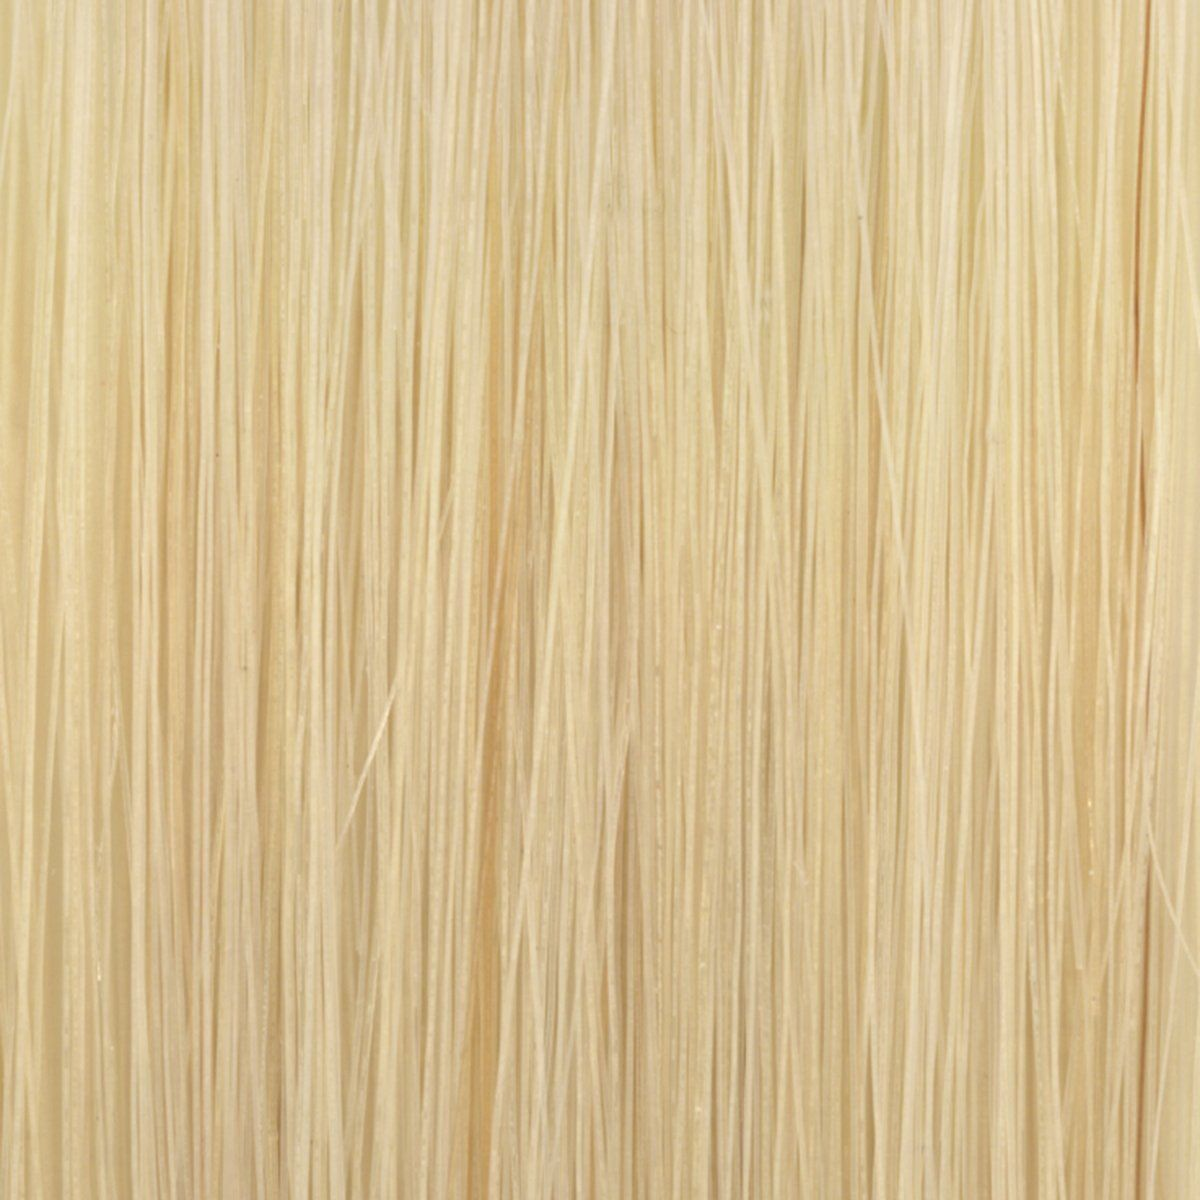 Tape In Hair Extensions Sample Tape In Hair Extensions Cheap